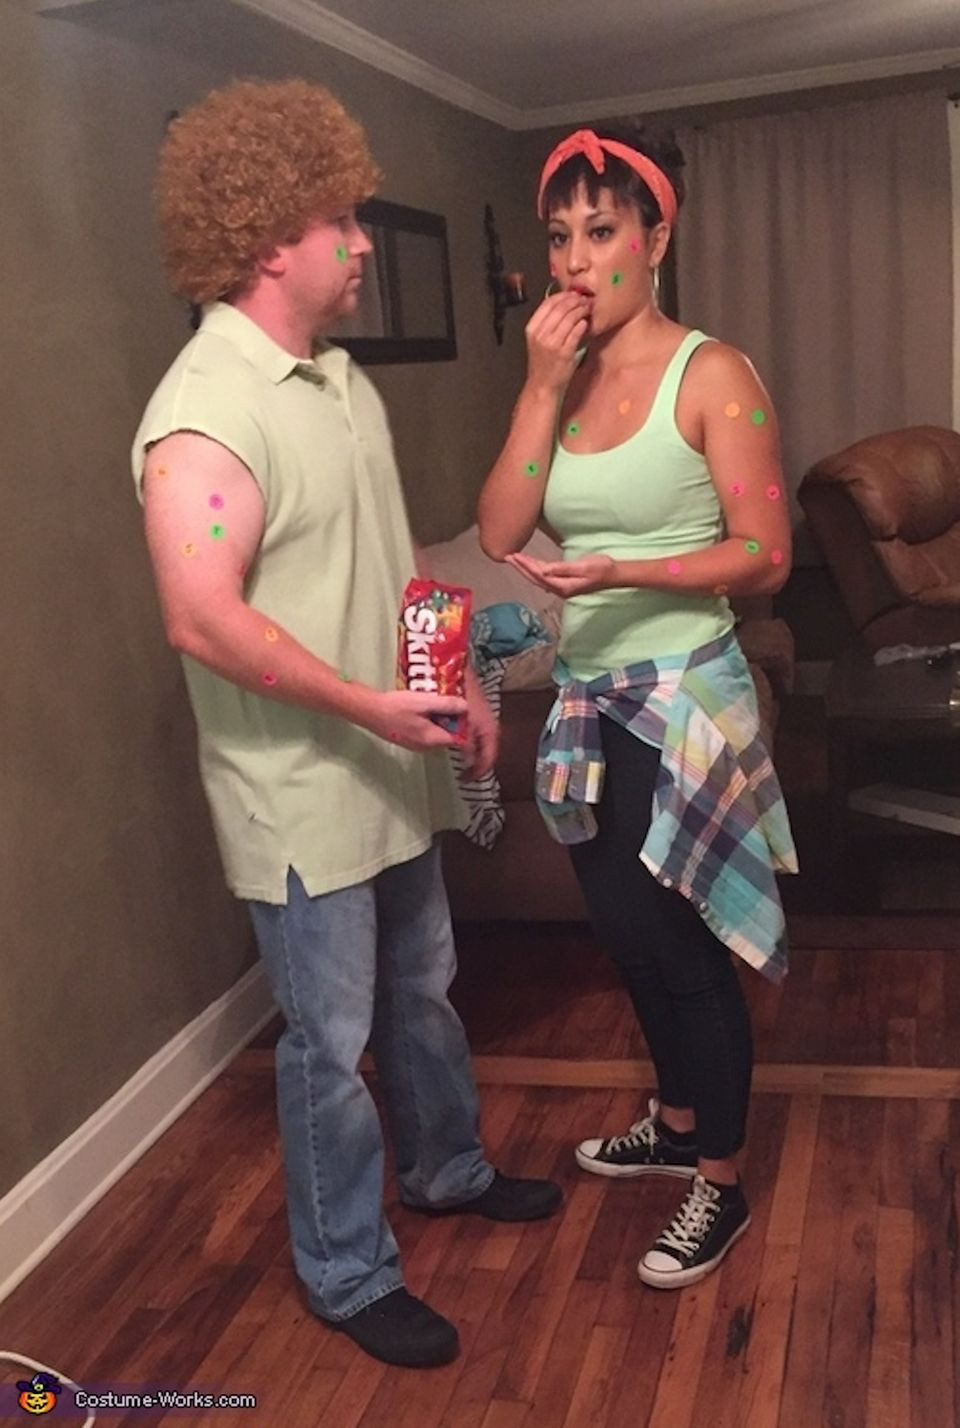 DIY Couple Costumes  DIY Last Minute Halloween Costumes For Couples That Are